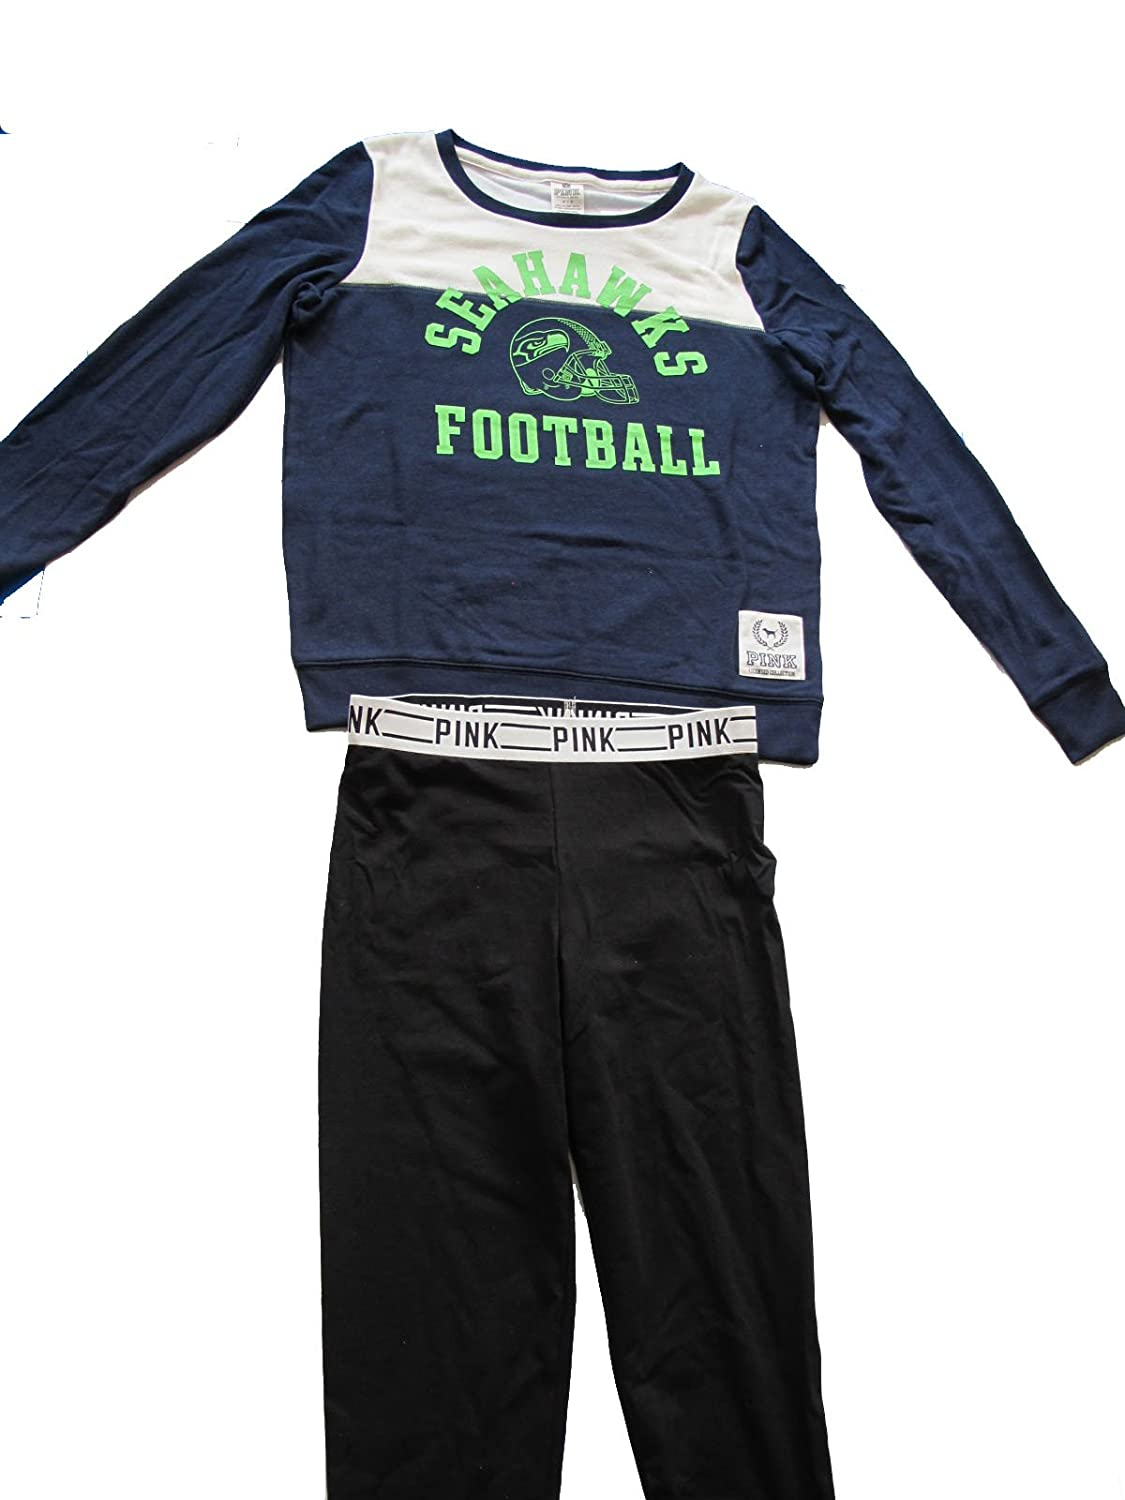 best sneakers fa196 967ba Victoria's Secret PINK NFL Seattle Seahawks Varsity ...